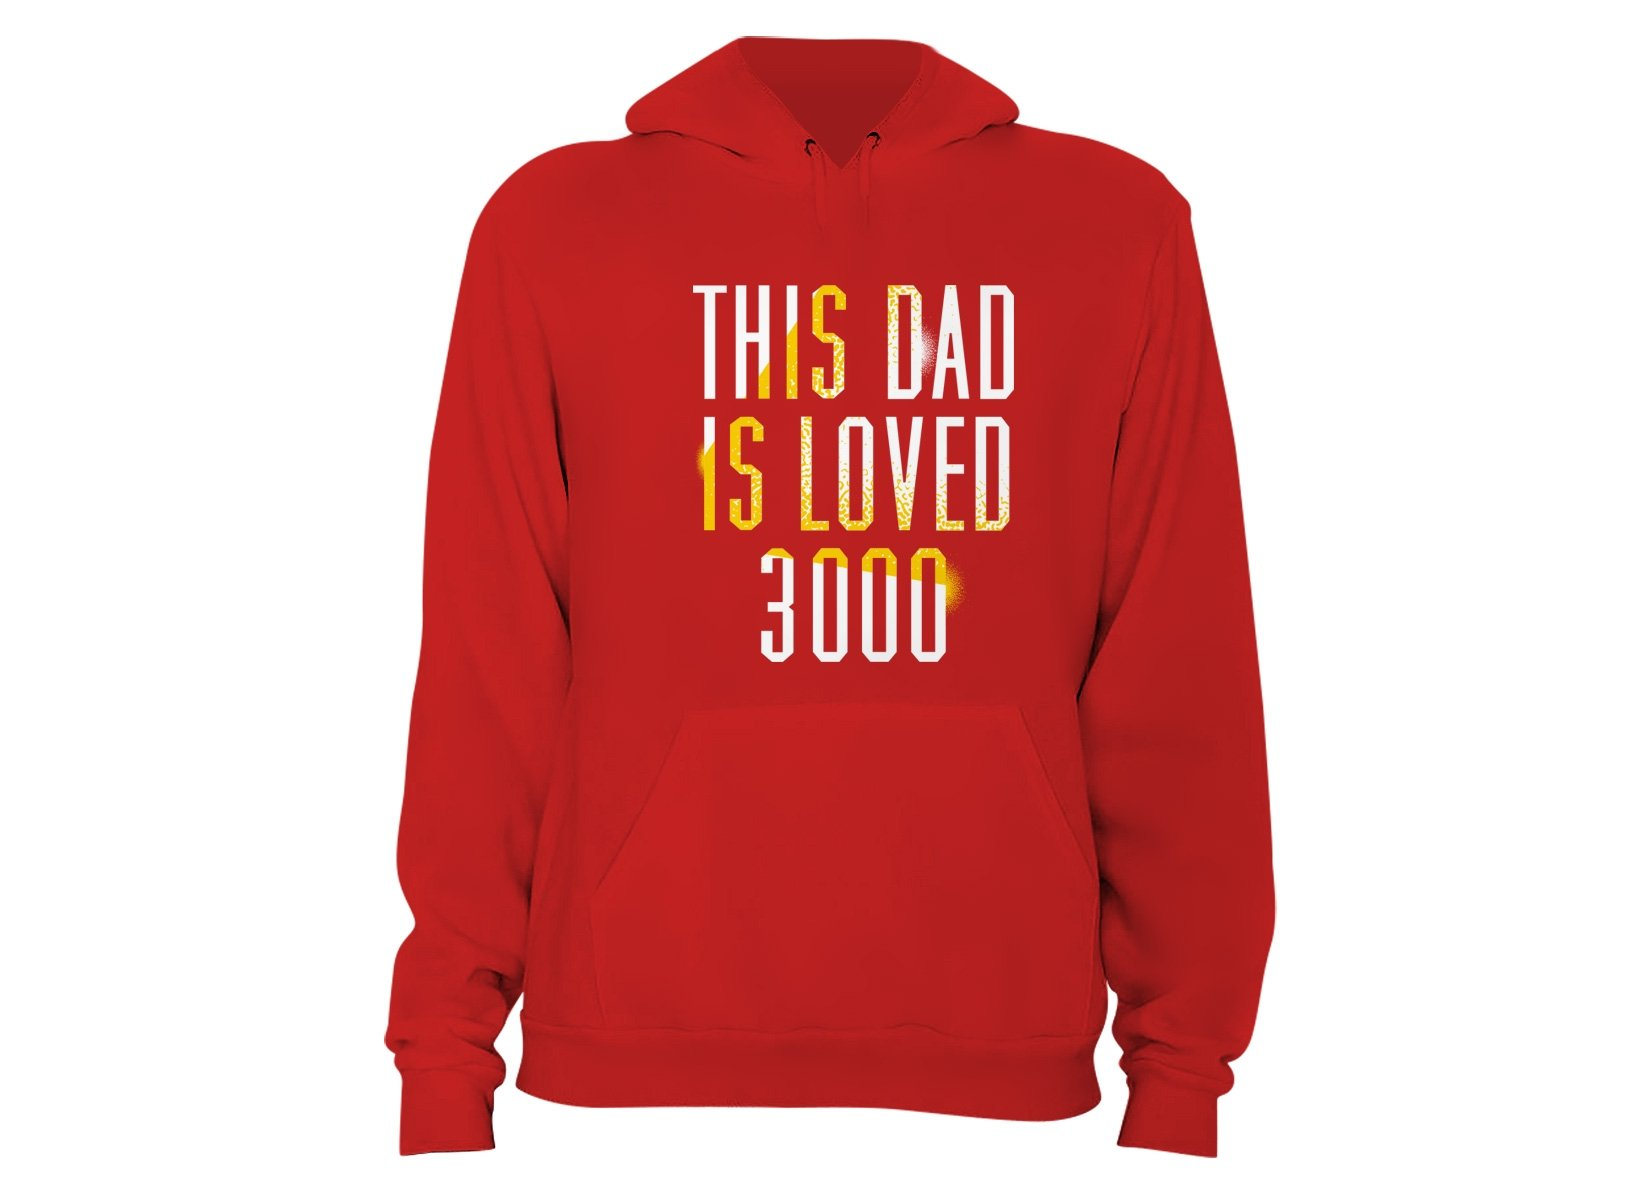 This Dad Is Loved 3000 on Hoodie